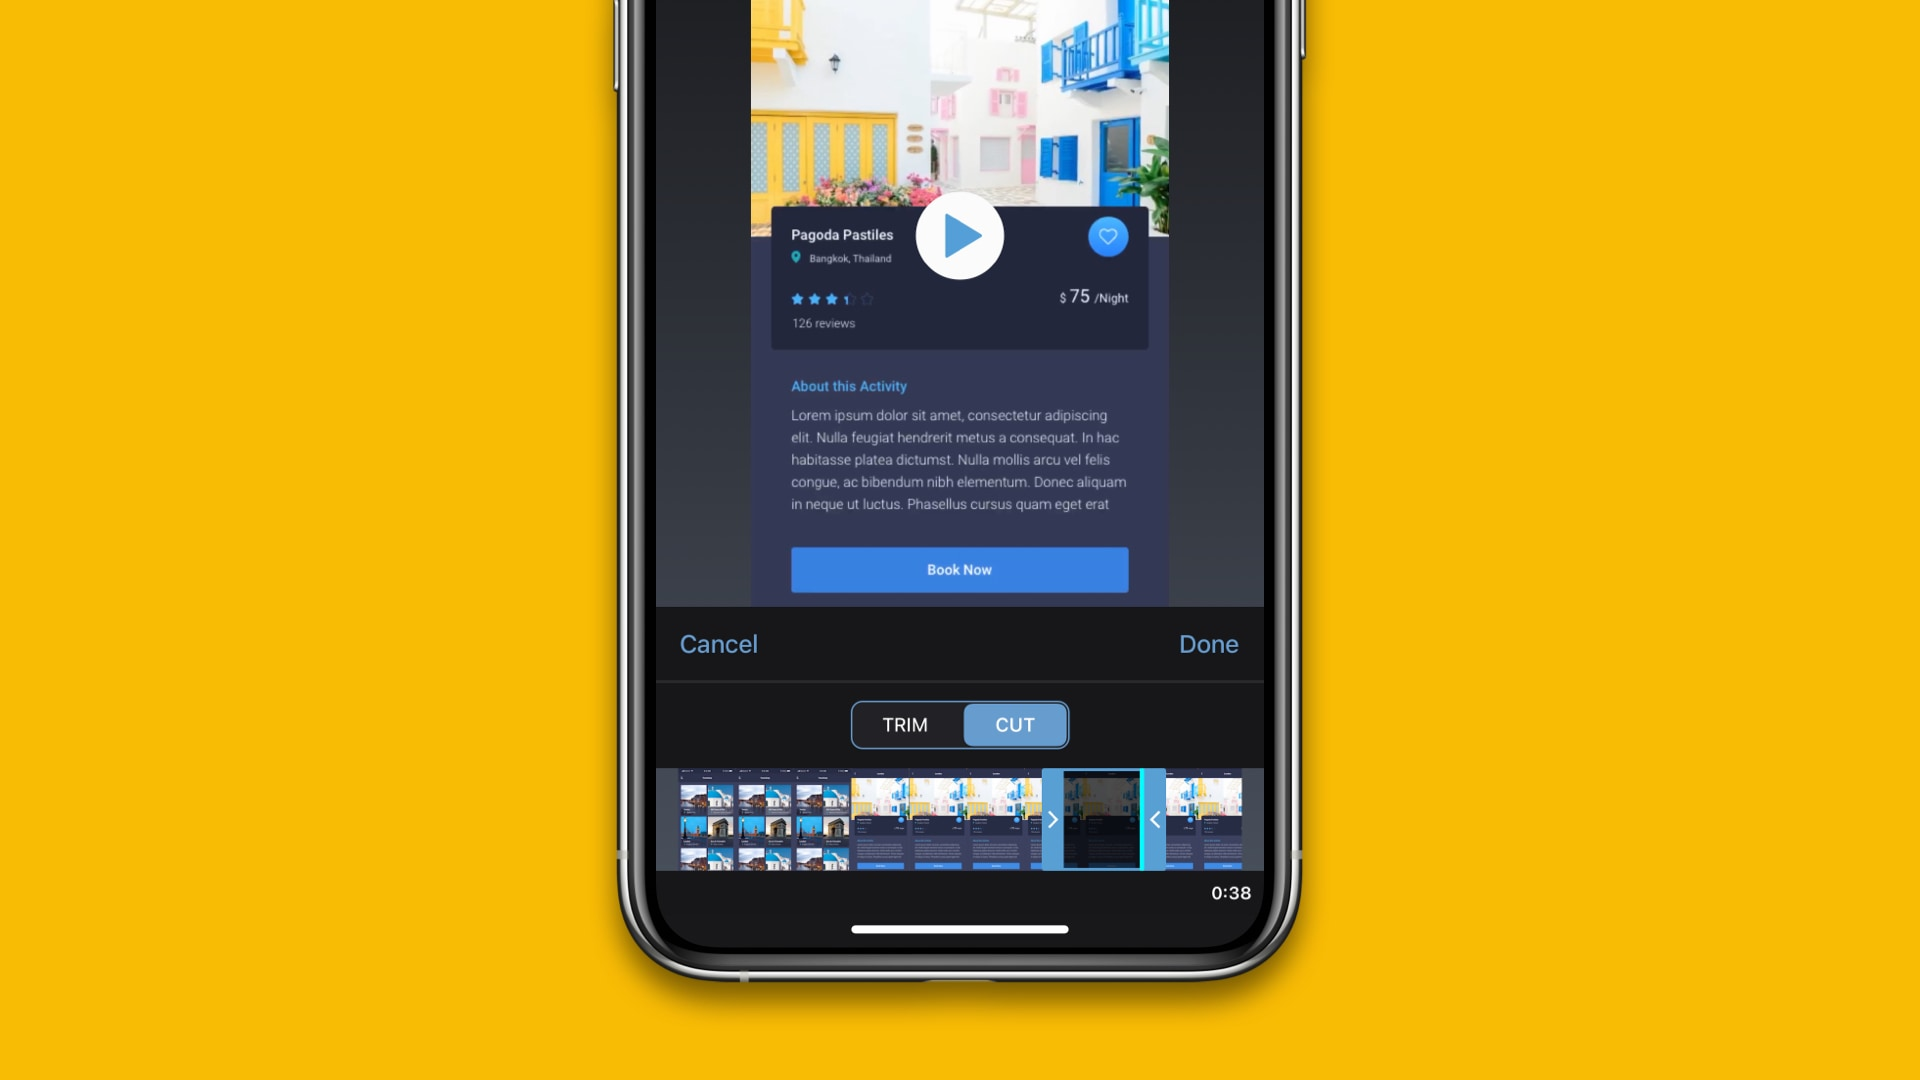 Trim and Cut Mobile Videos